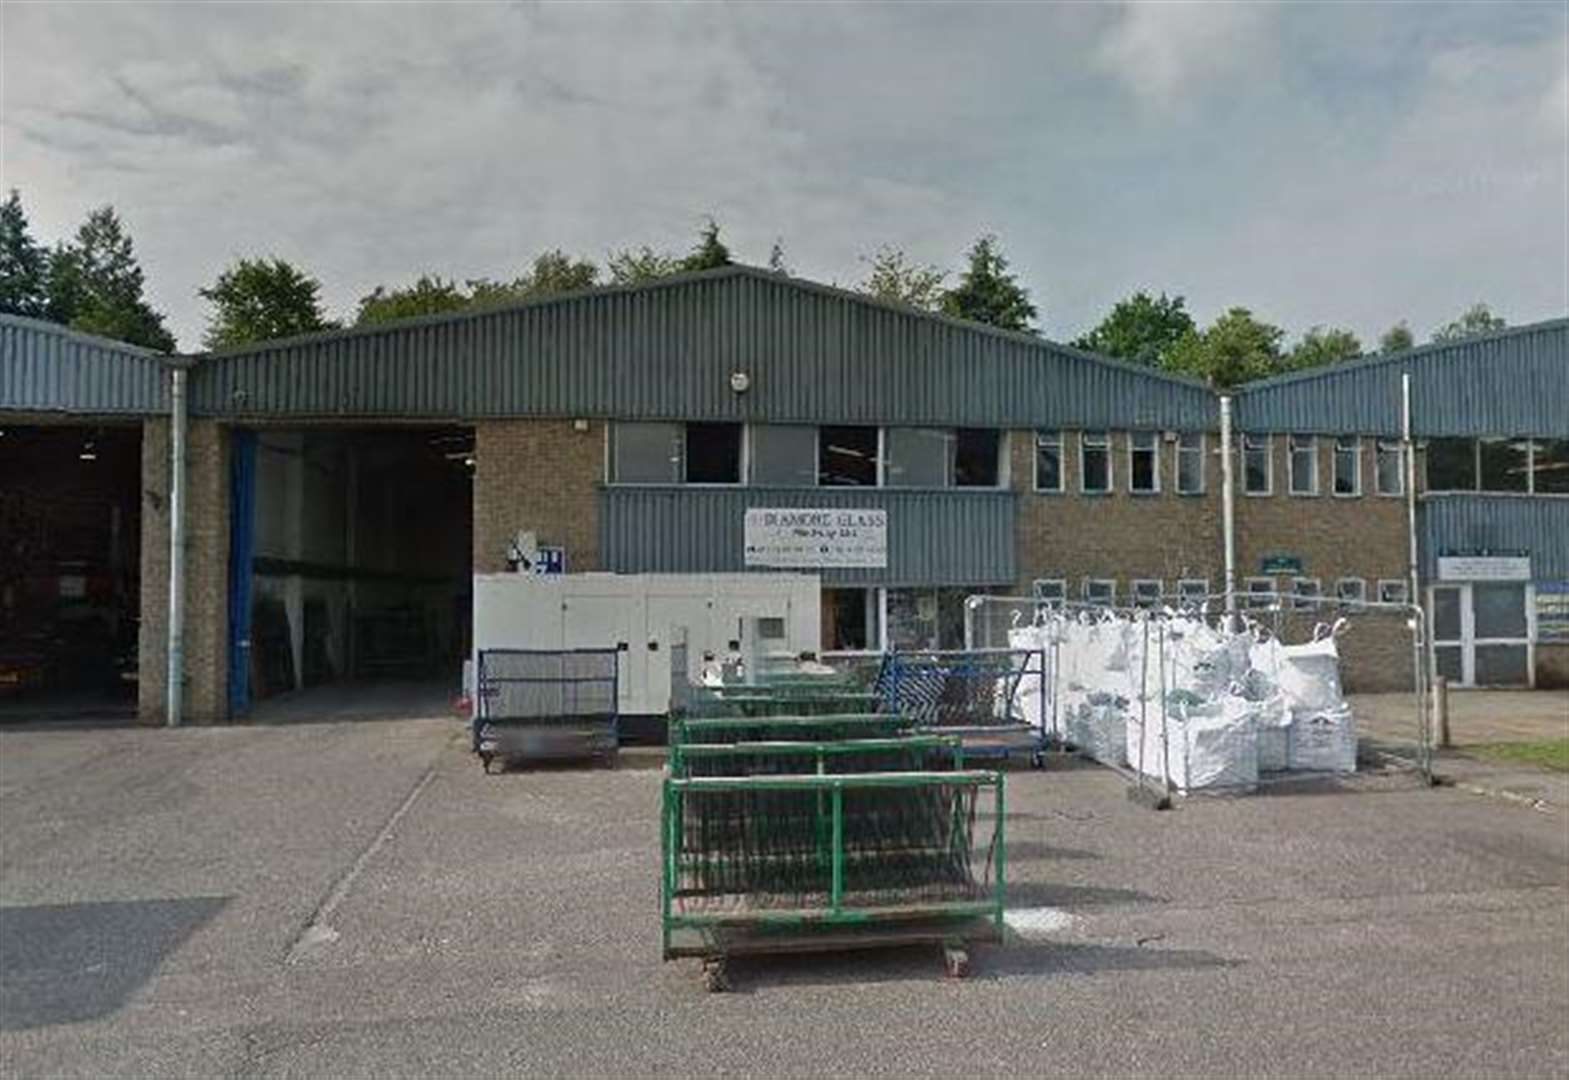 Jobs lost as glazing firm goes into administration